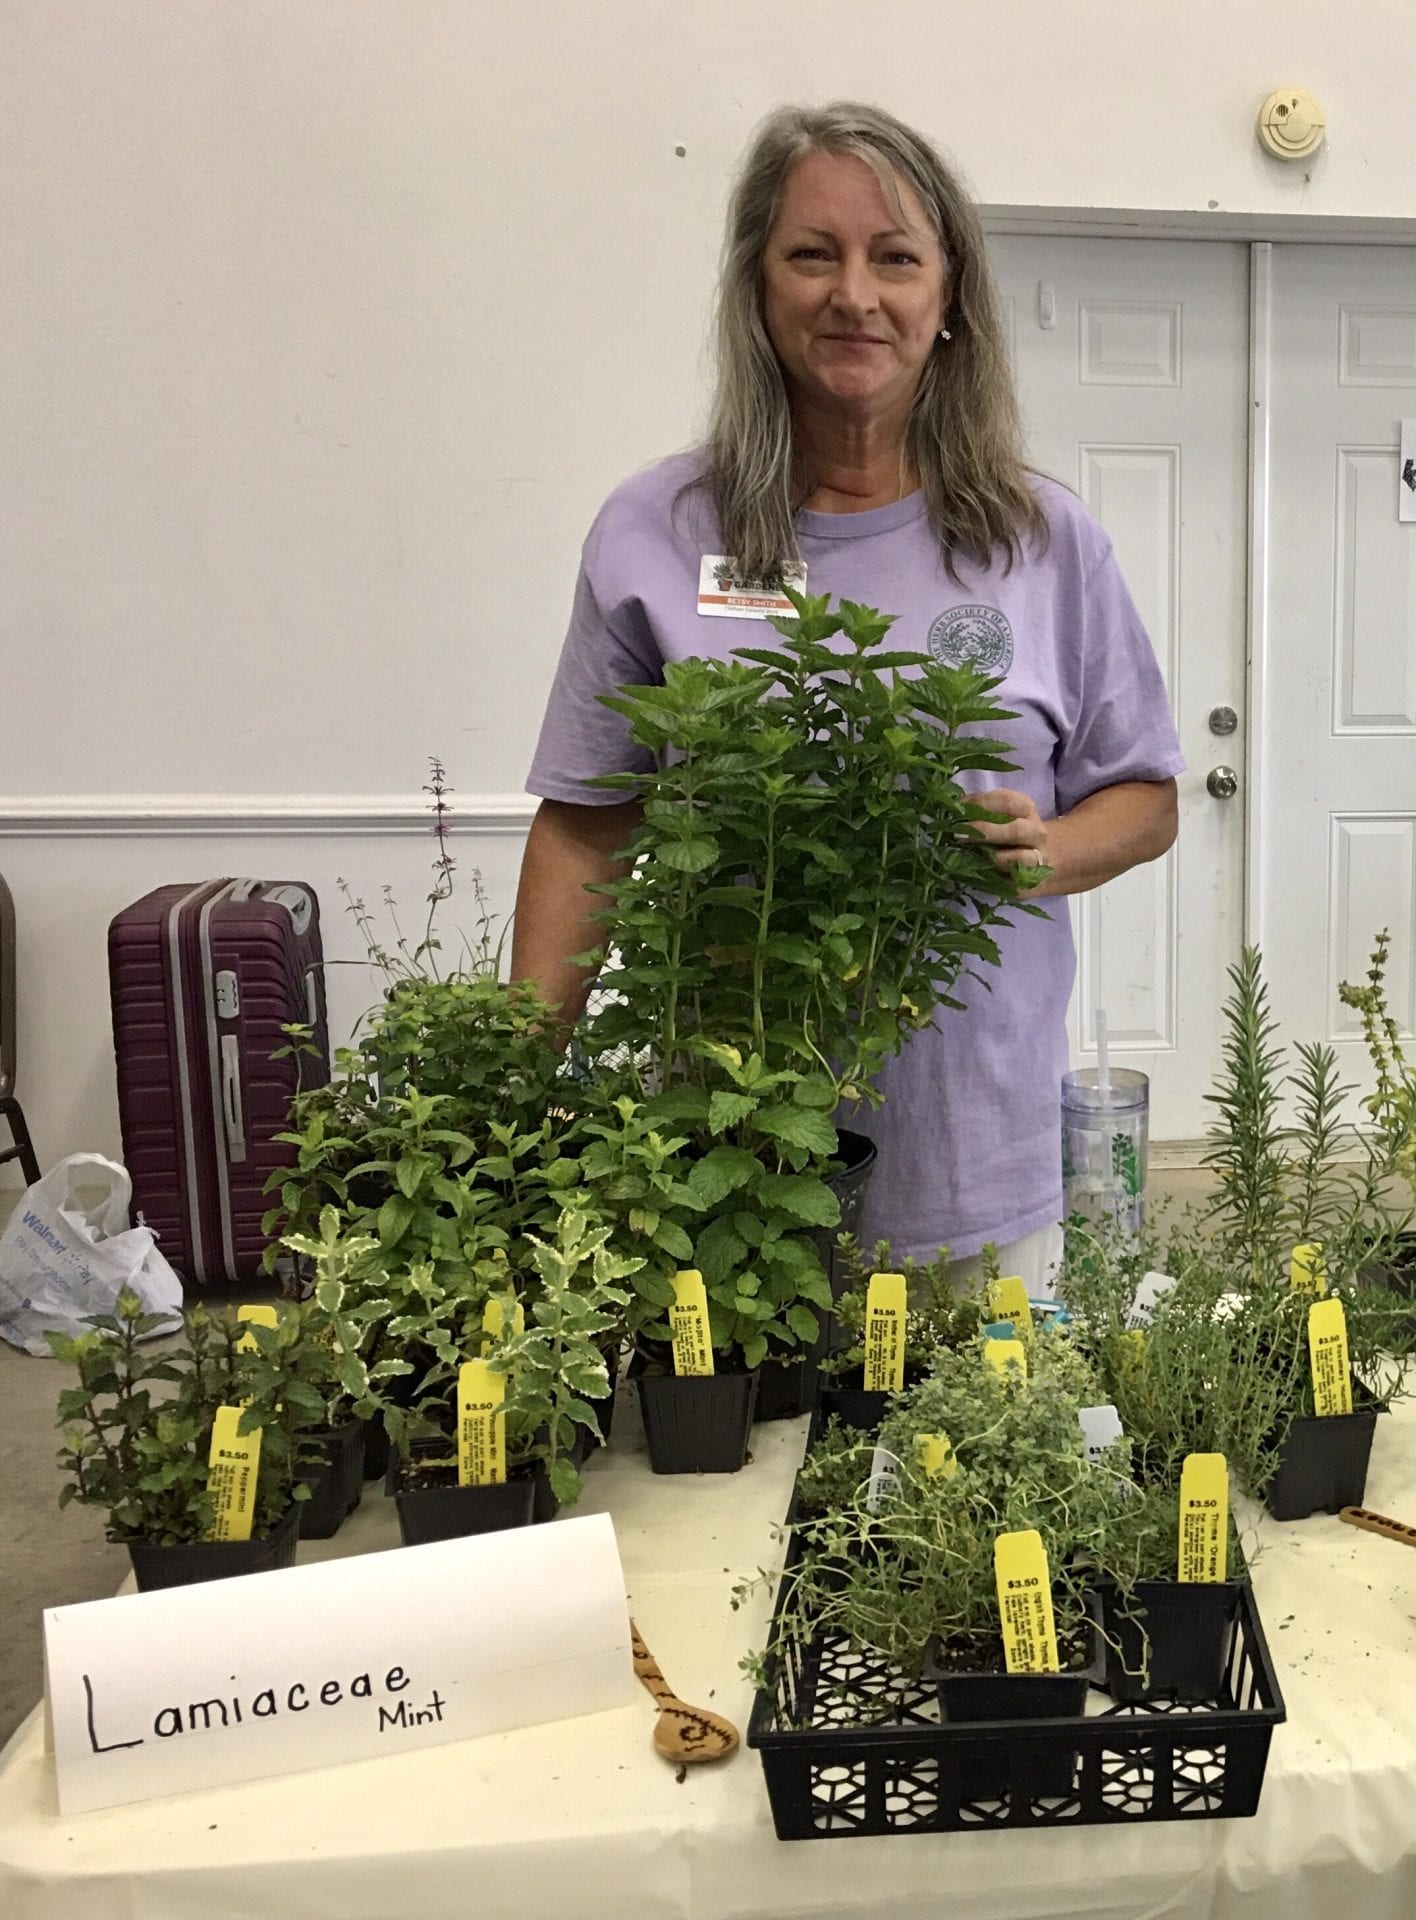 Betsy showing herbs